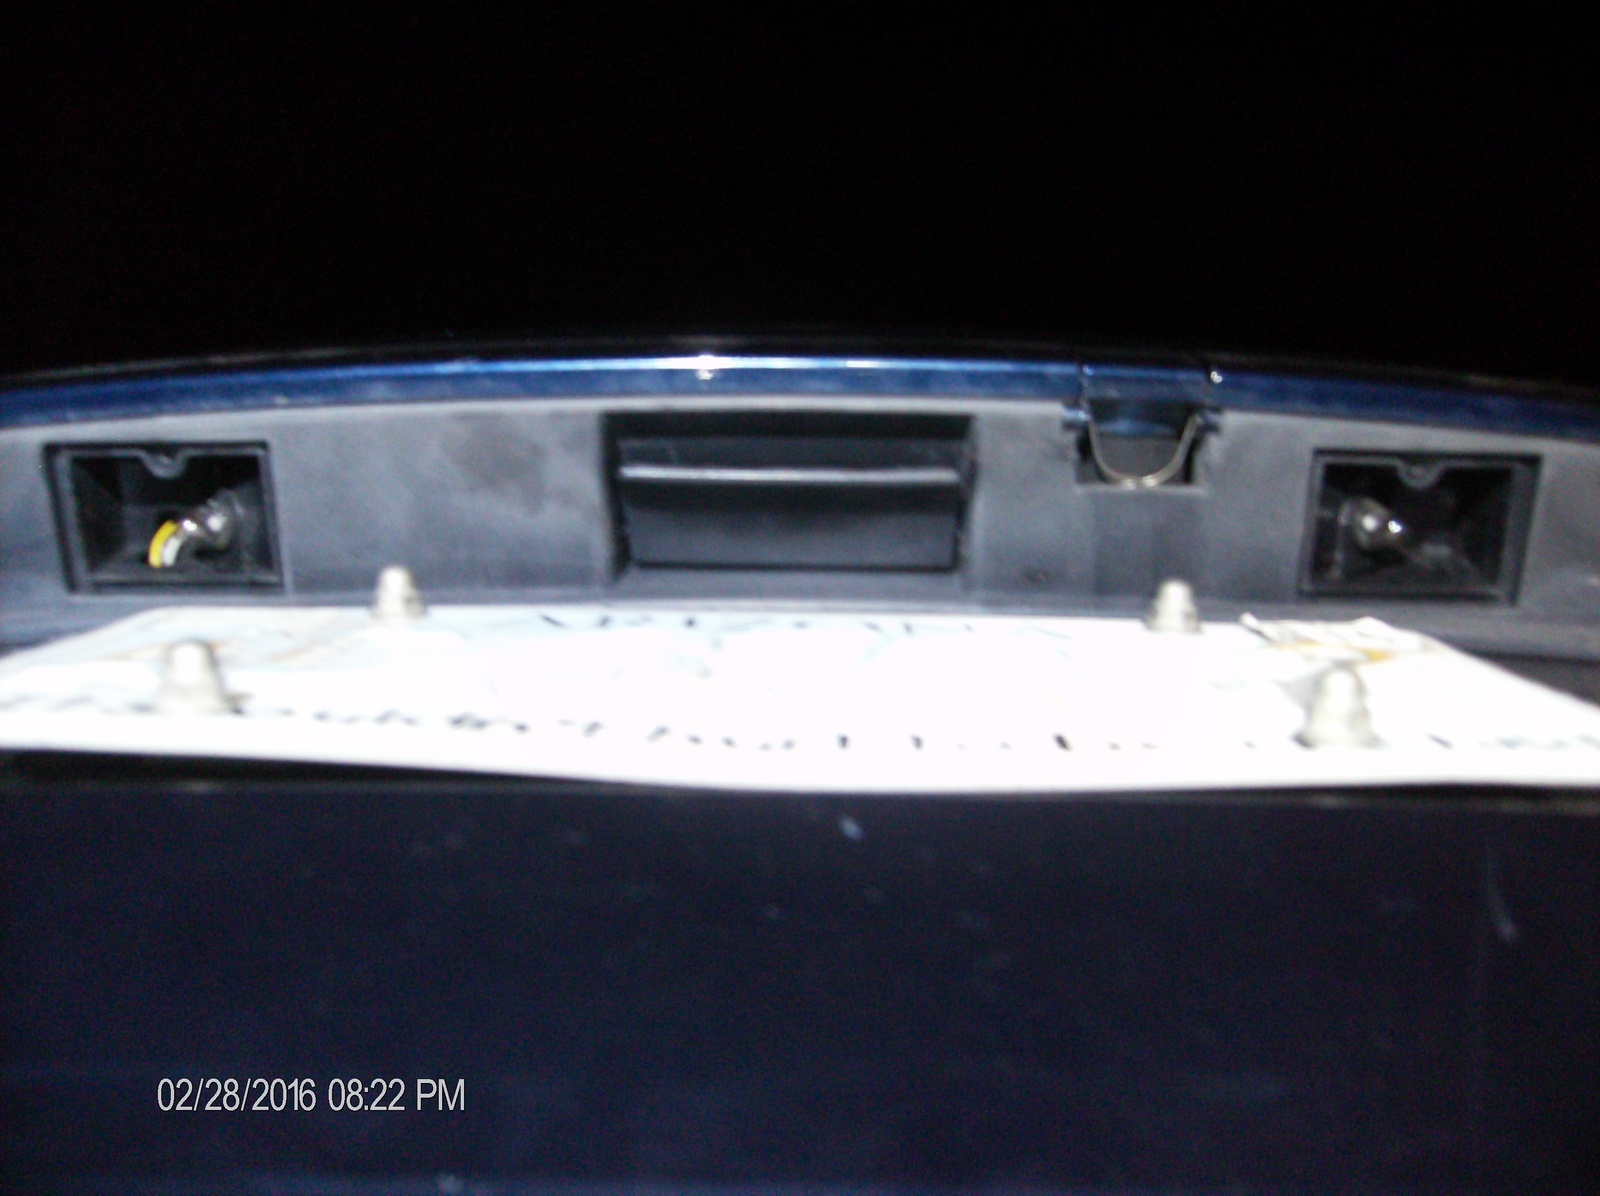 Change headl bulb in a 1999 volvo s70 volvo s70 for 1998 volvo v70 master window switch